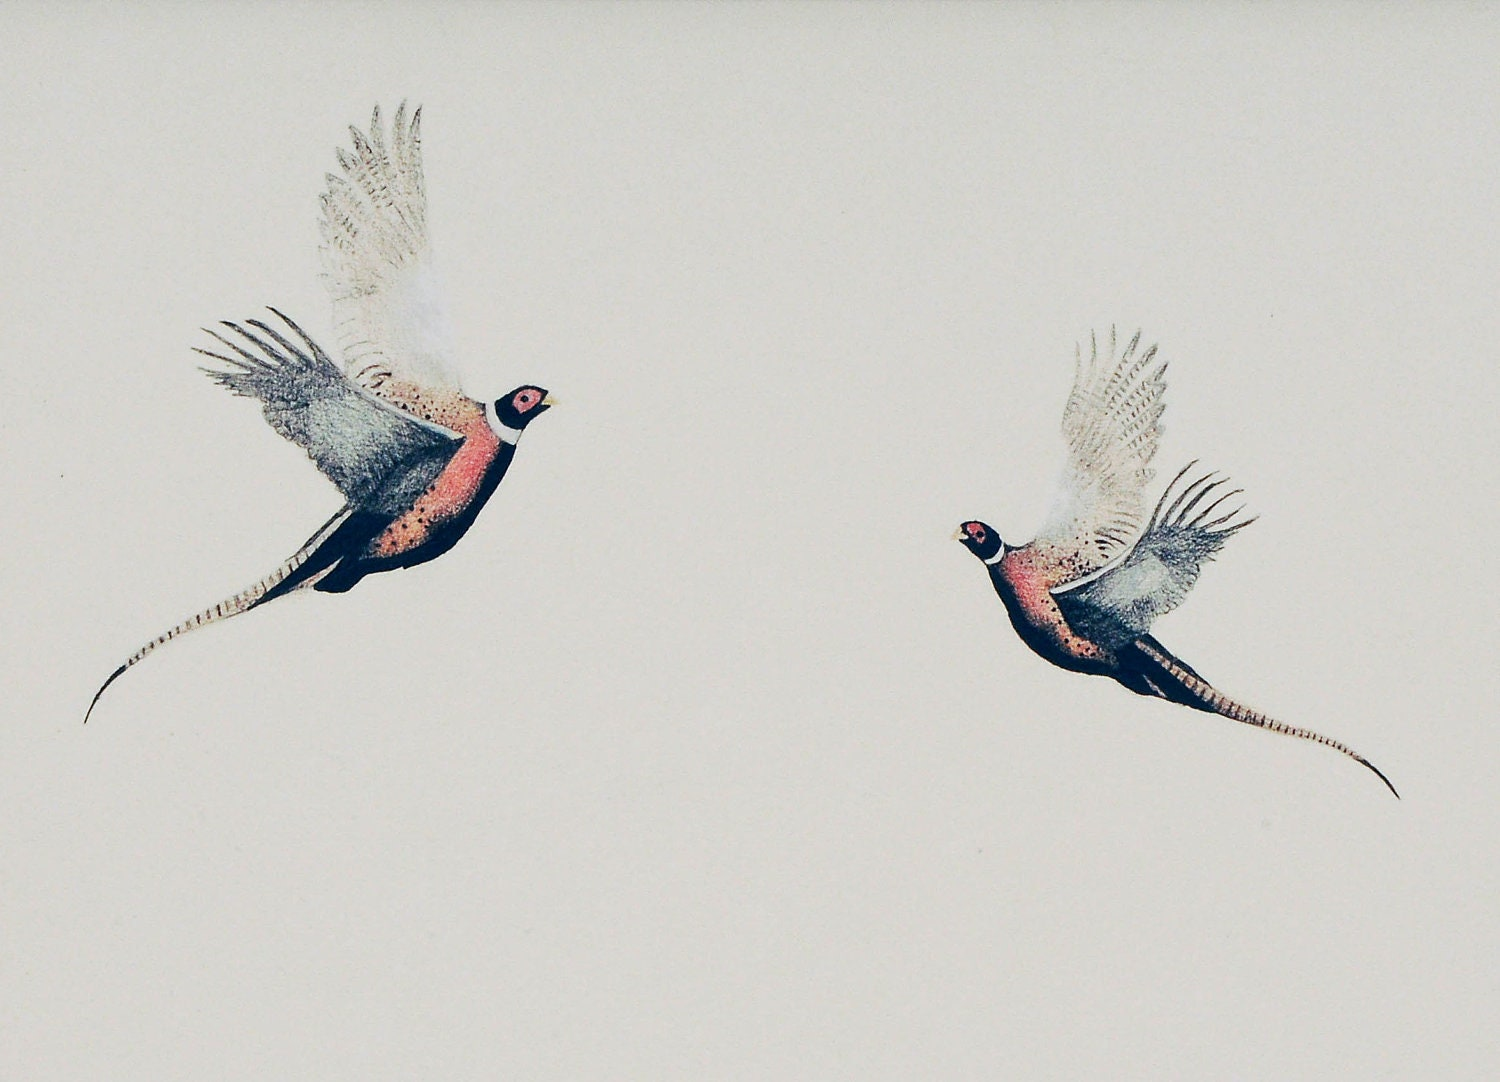 Valentines Bird Art Pheasants Flying, limited edition print of original - romantic, valentines, illustration, wedding gift - StudioLavaan